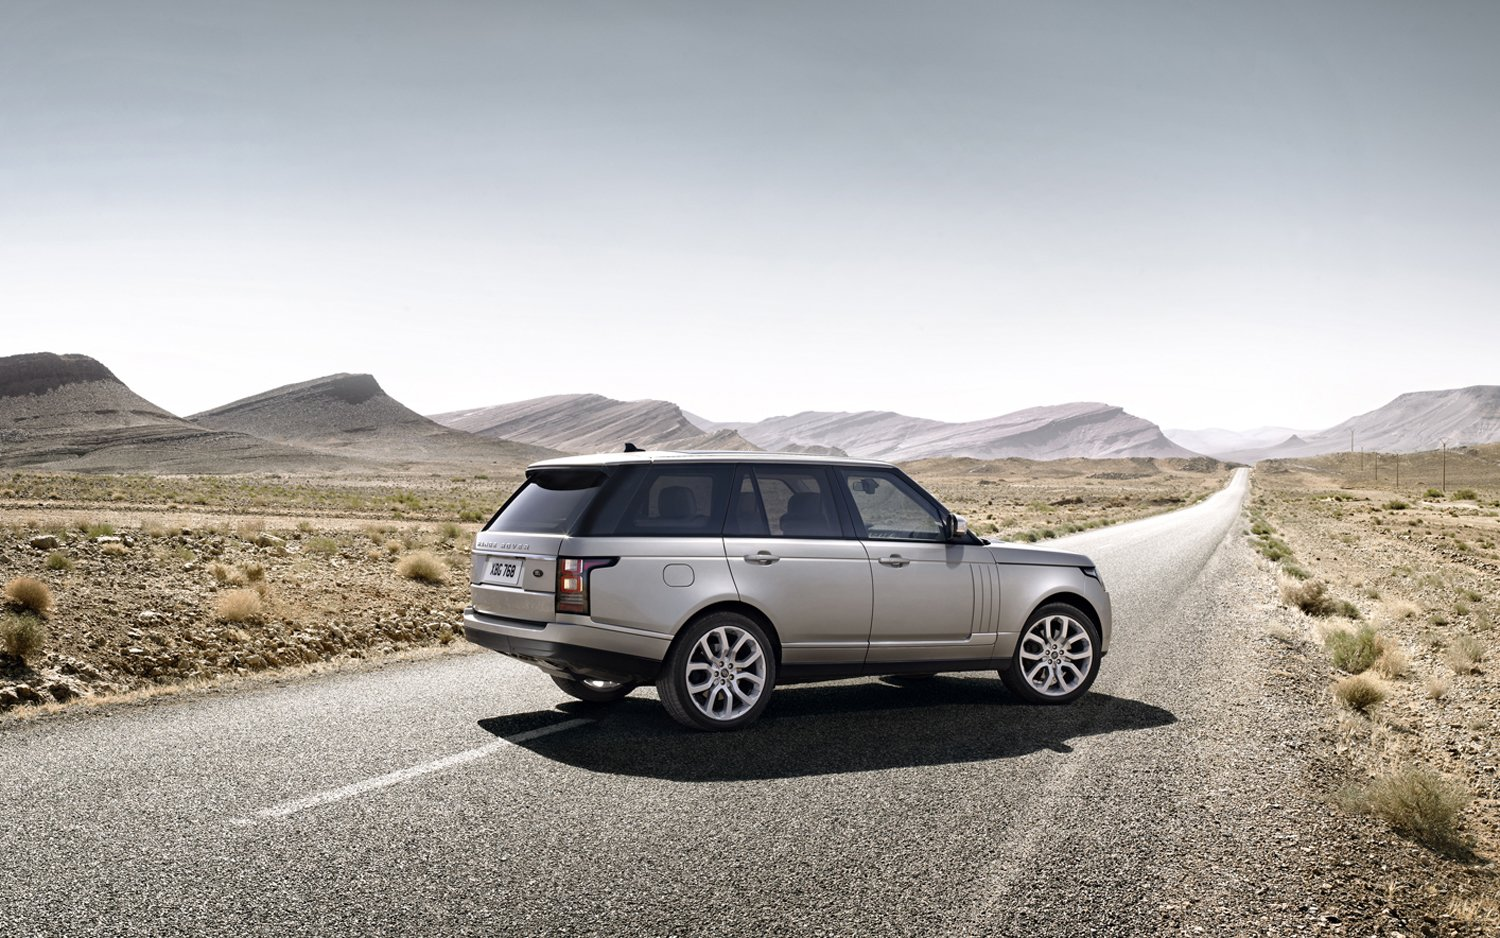 Latest Land Rover Range Rover Hd Wallpapers New Cars Reviews Free Download